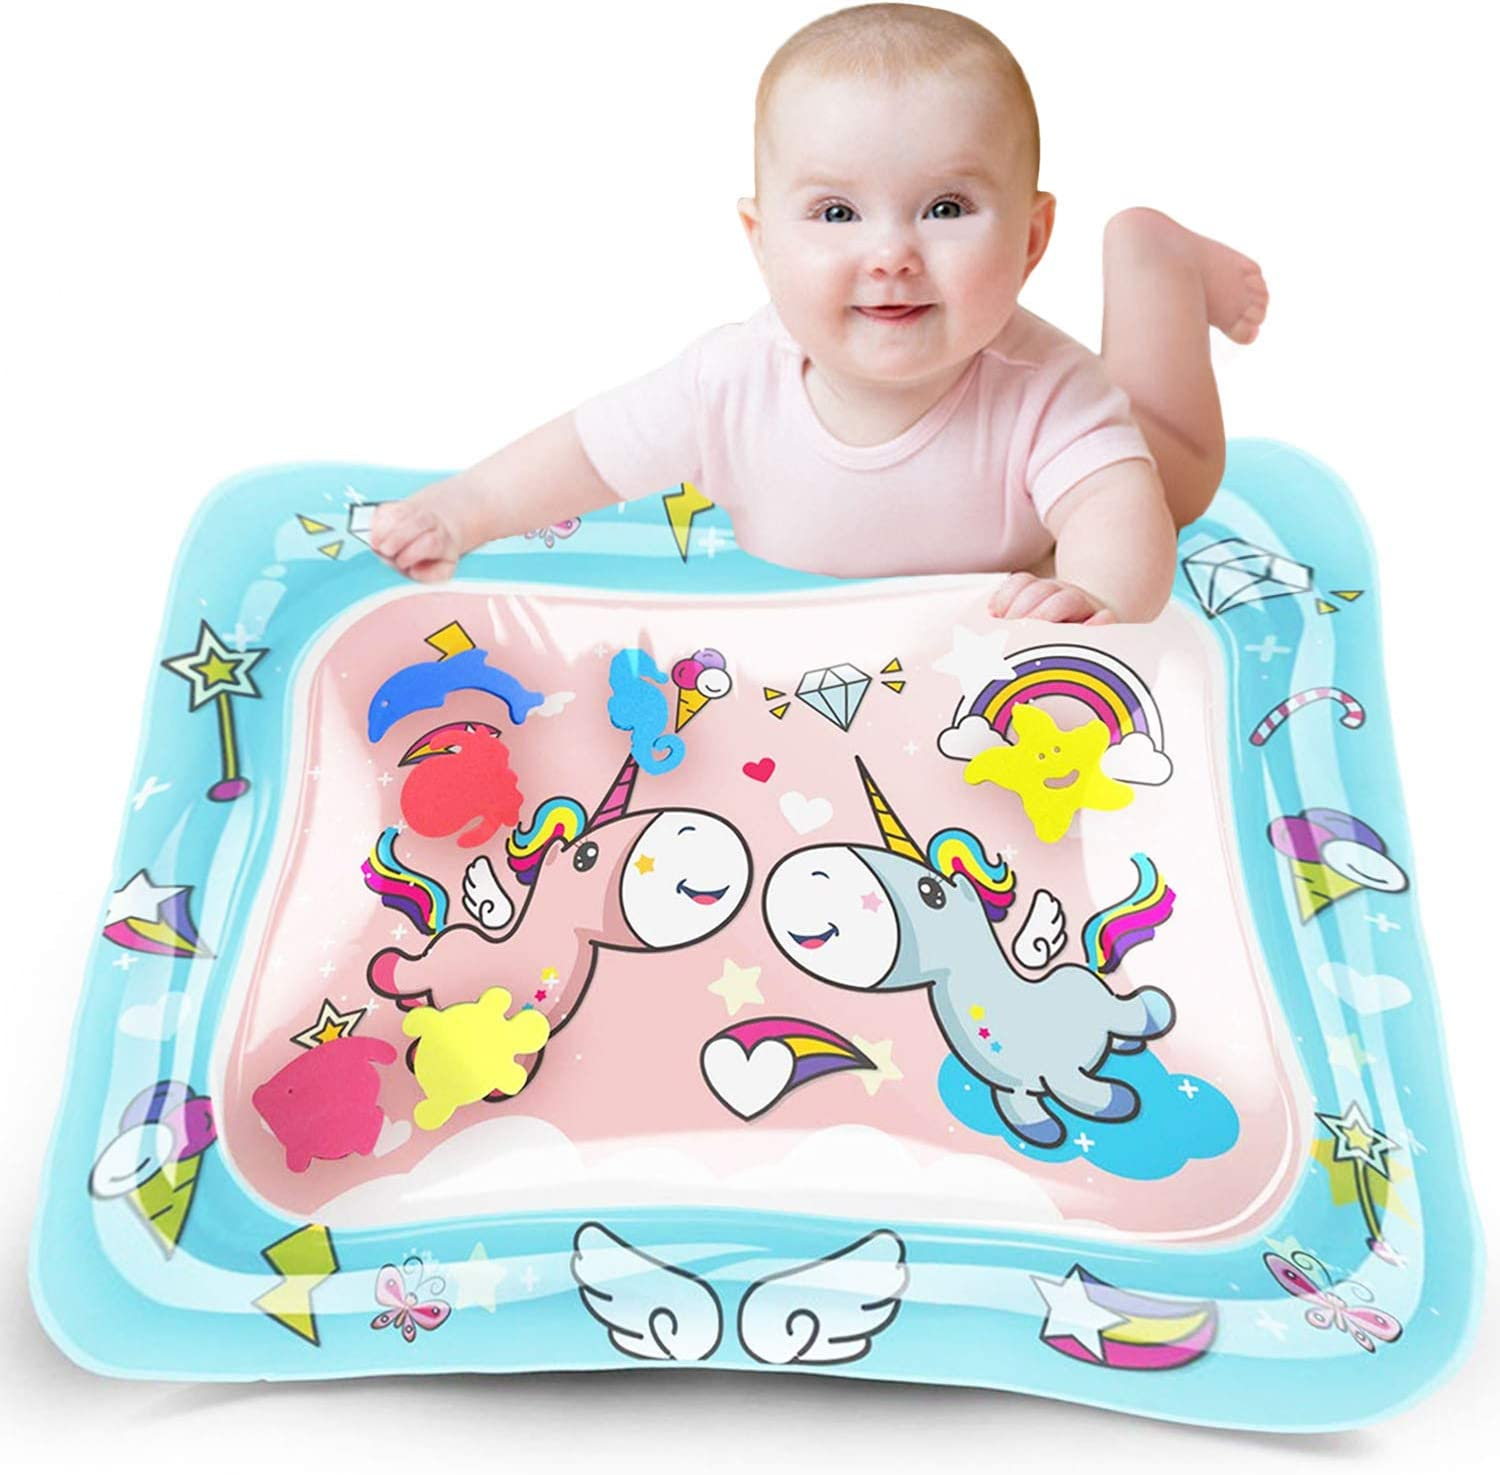 Baby Water Pad Tummy Time Water Mat Inflatable Play Mat Sensory Toys for Baby Early Development Toys